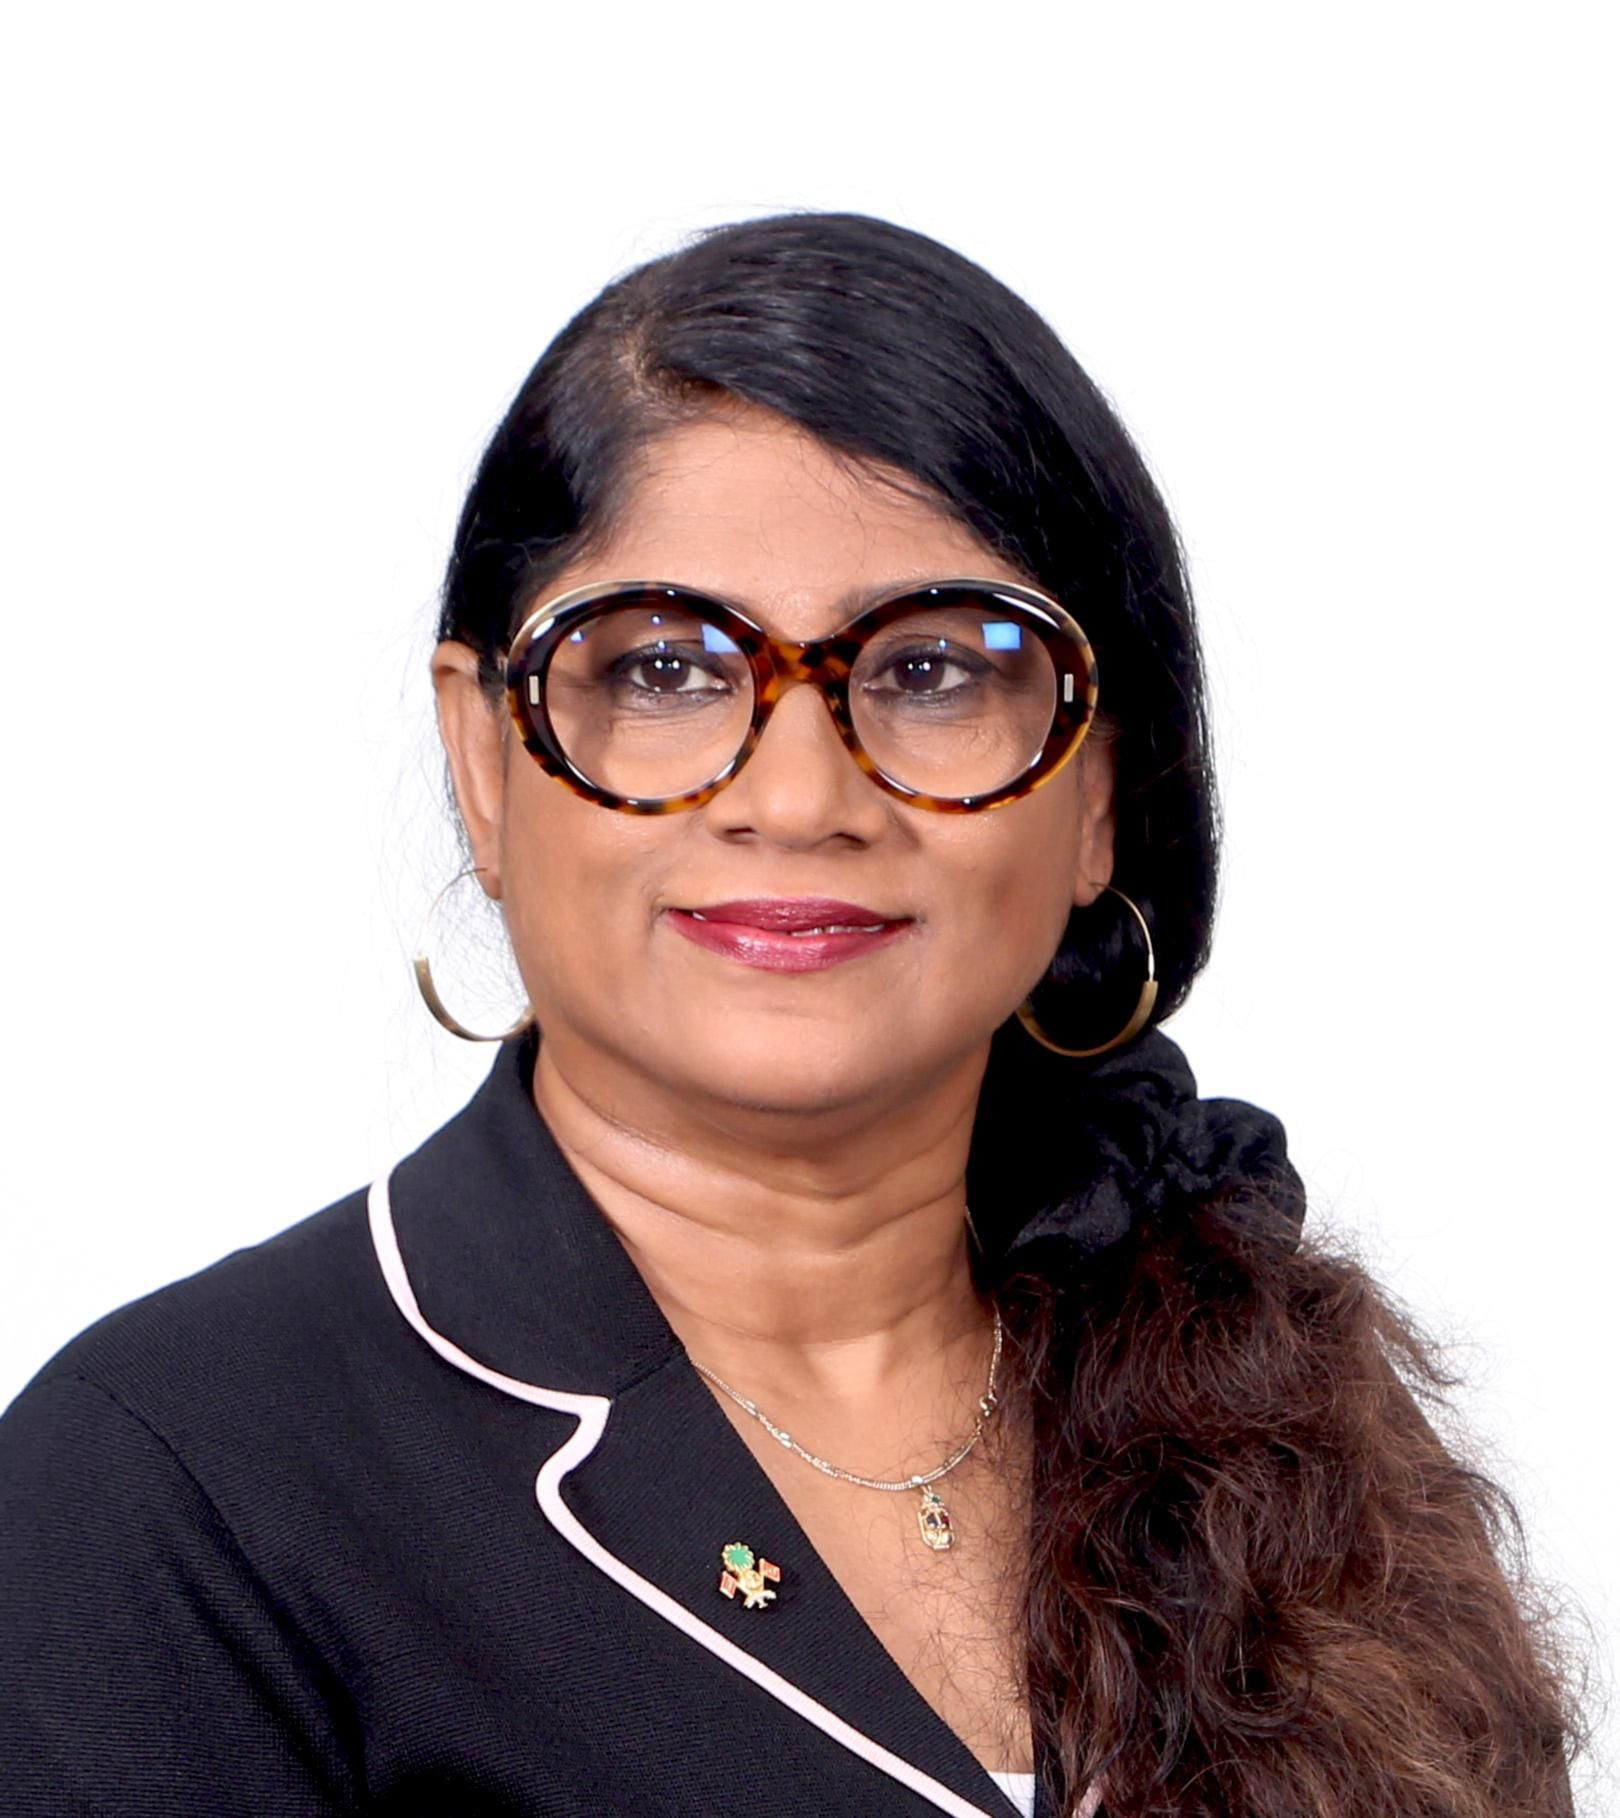 Her Excellency Uza. Mariya Didi